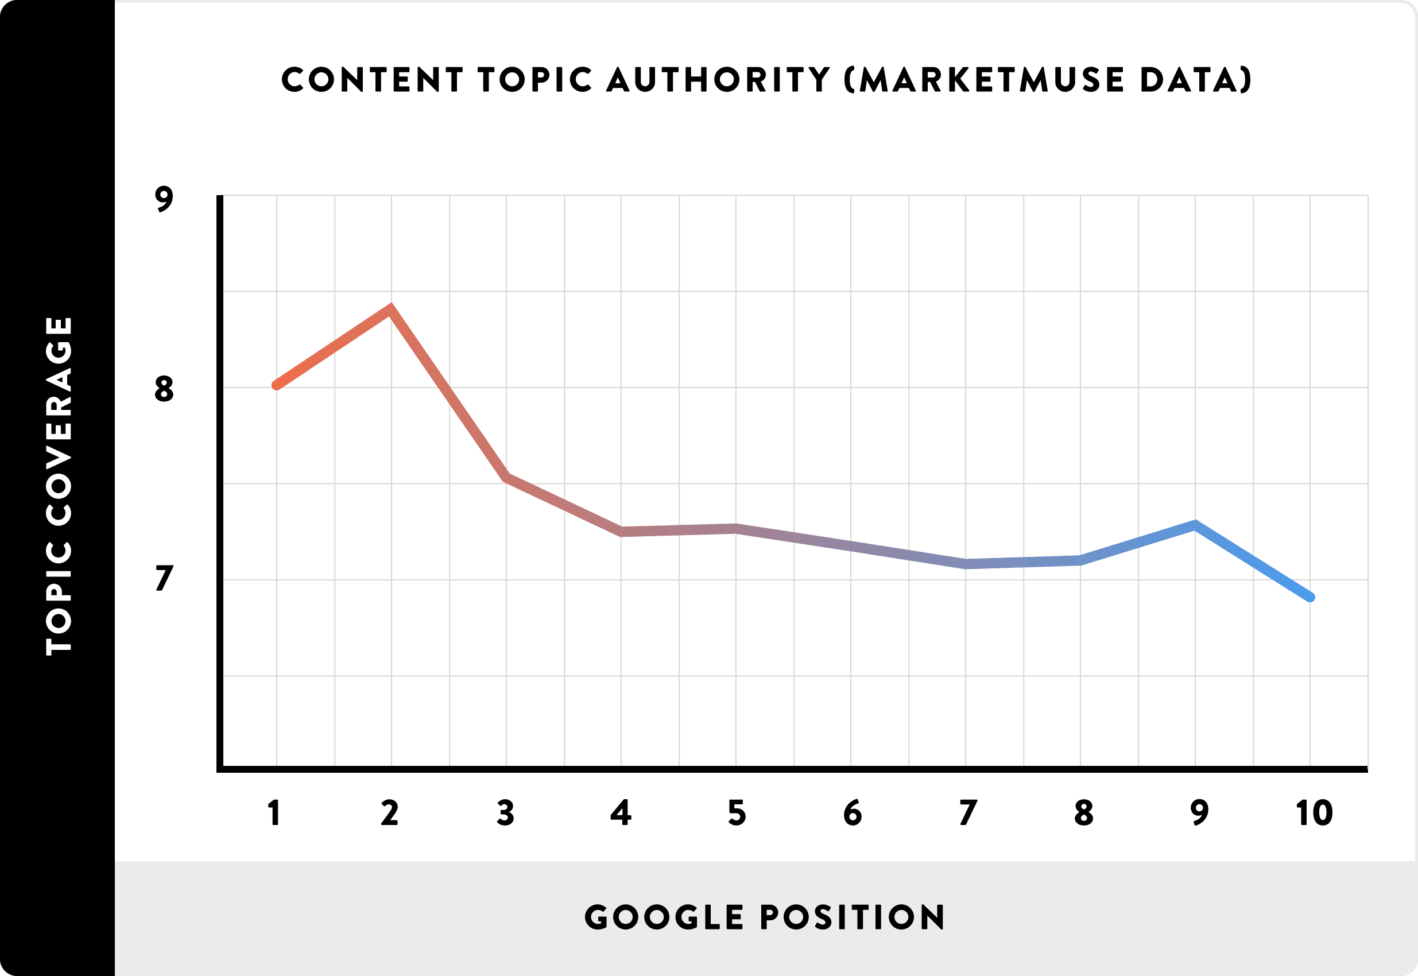 Content authority tend to correlate with high search rankings